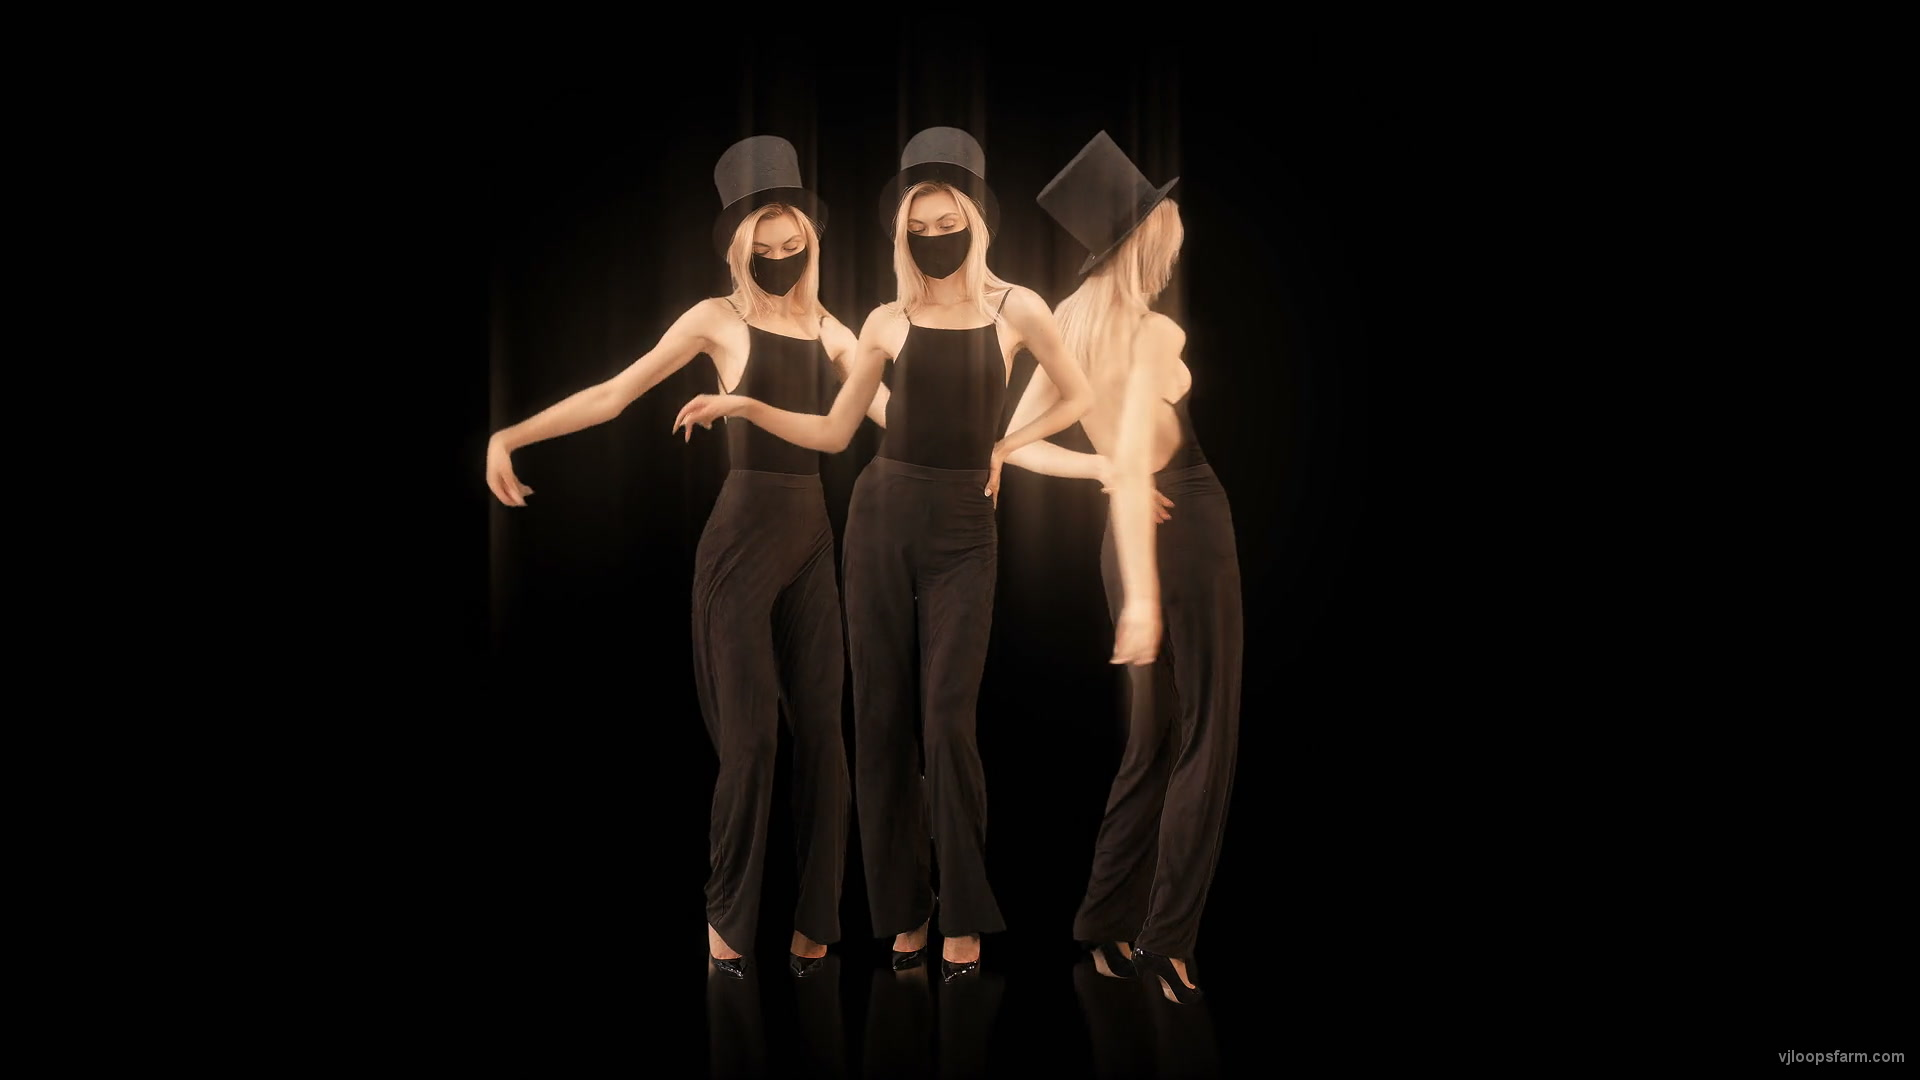 vj video background Softly-Three-Girls-in-Covid-19-black-mask-dancing-isolated-on-black-background-4K-Video-Art-VJ-Footage-looped-1920_003